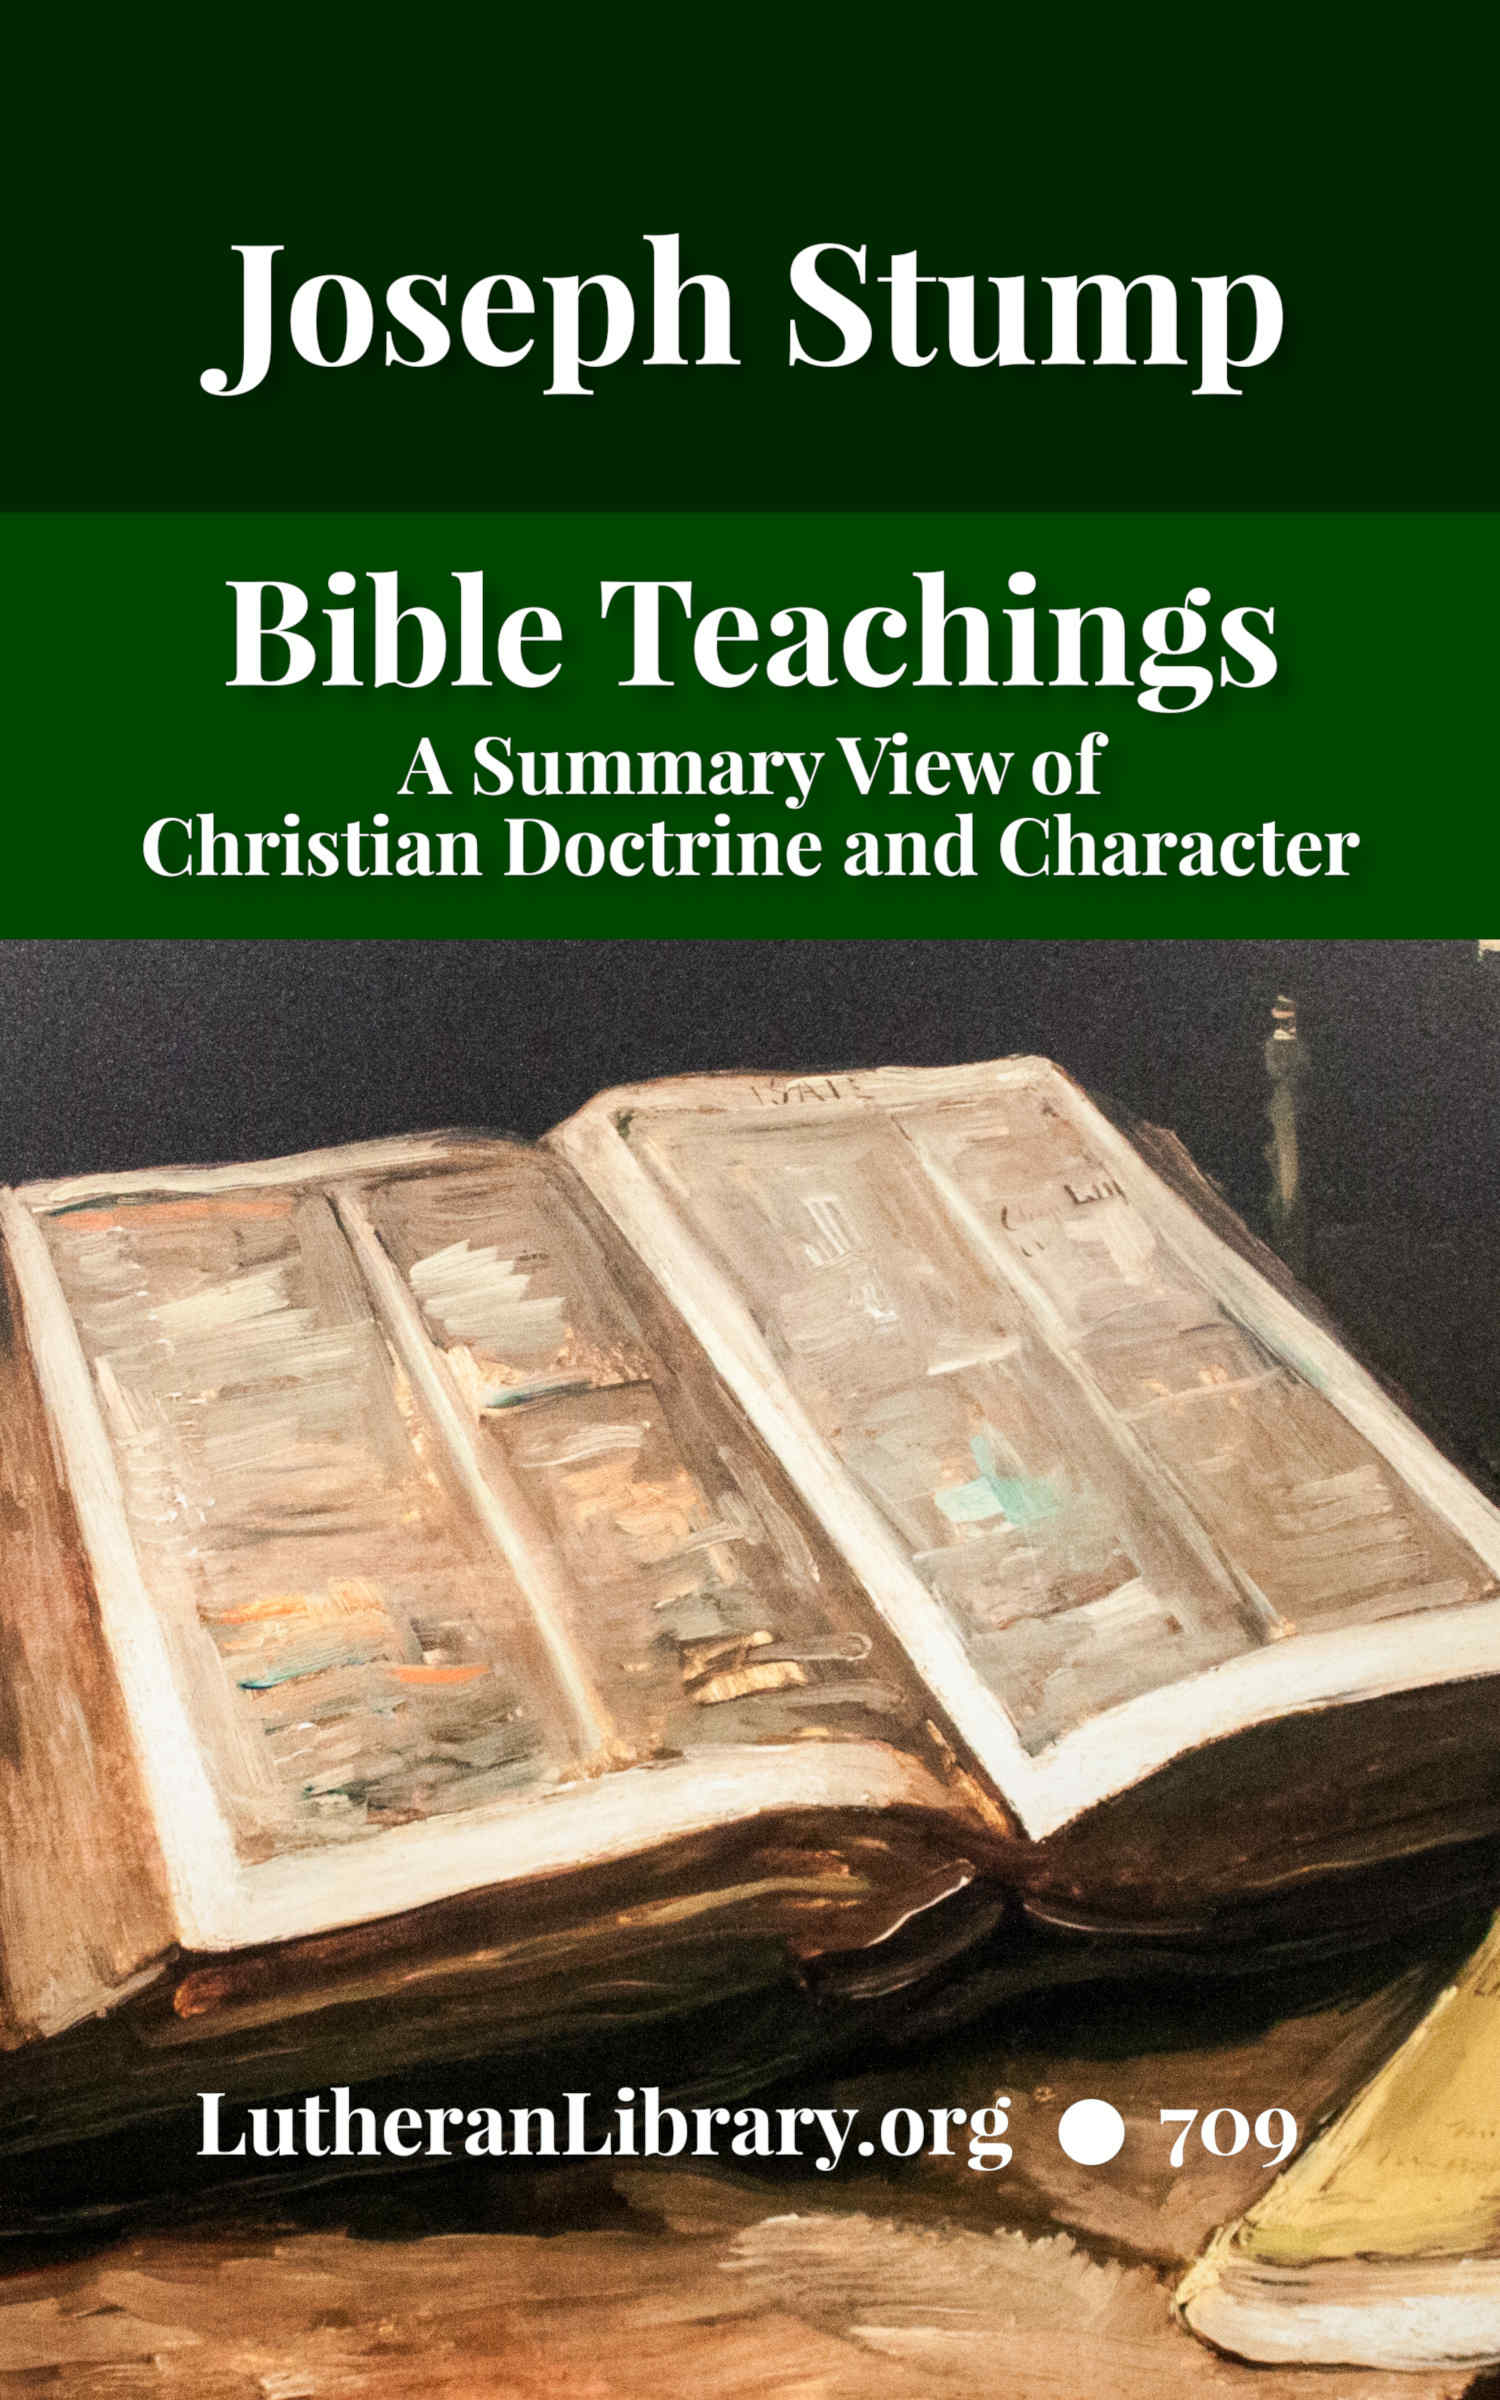 Bible Teachings by Joseph Stump